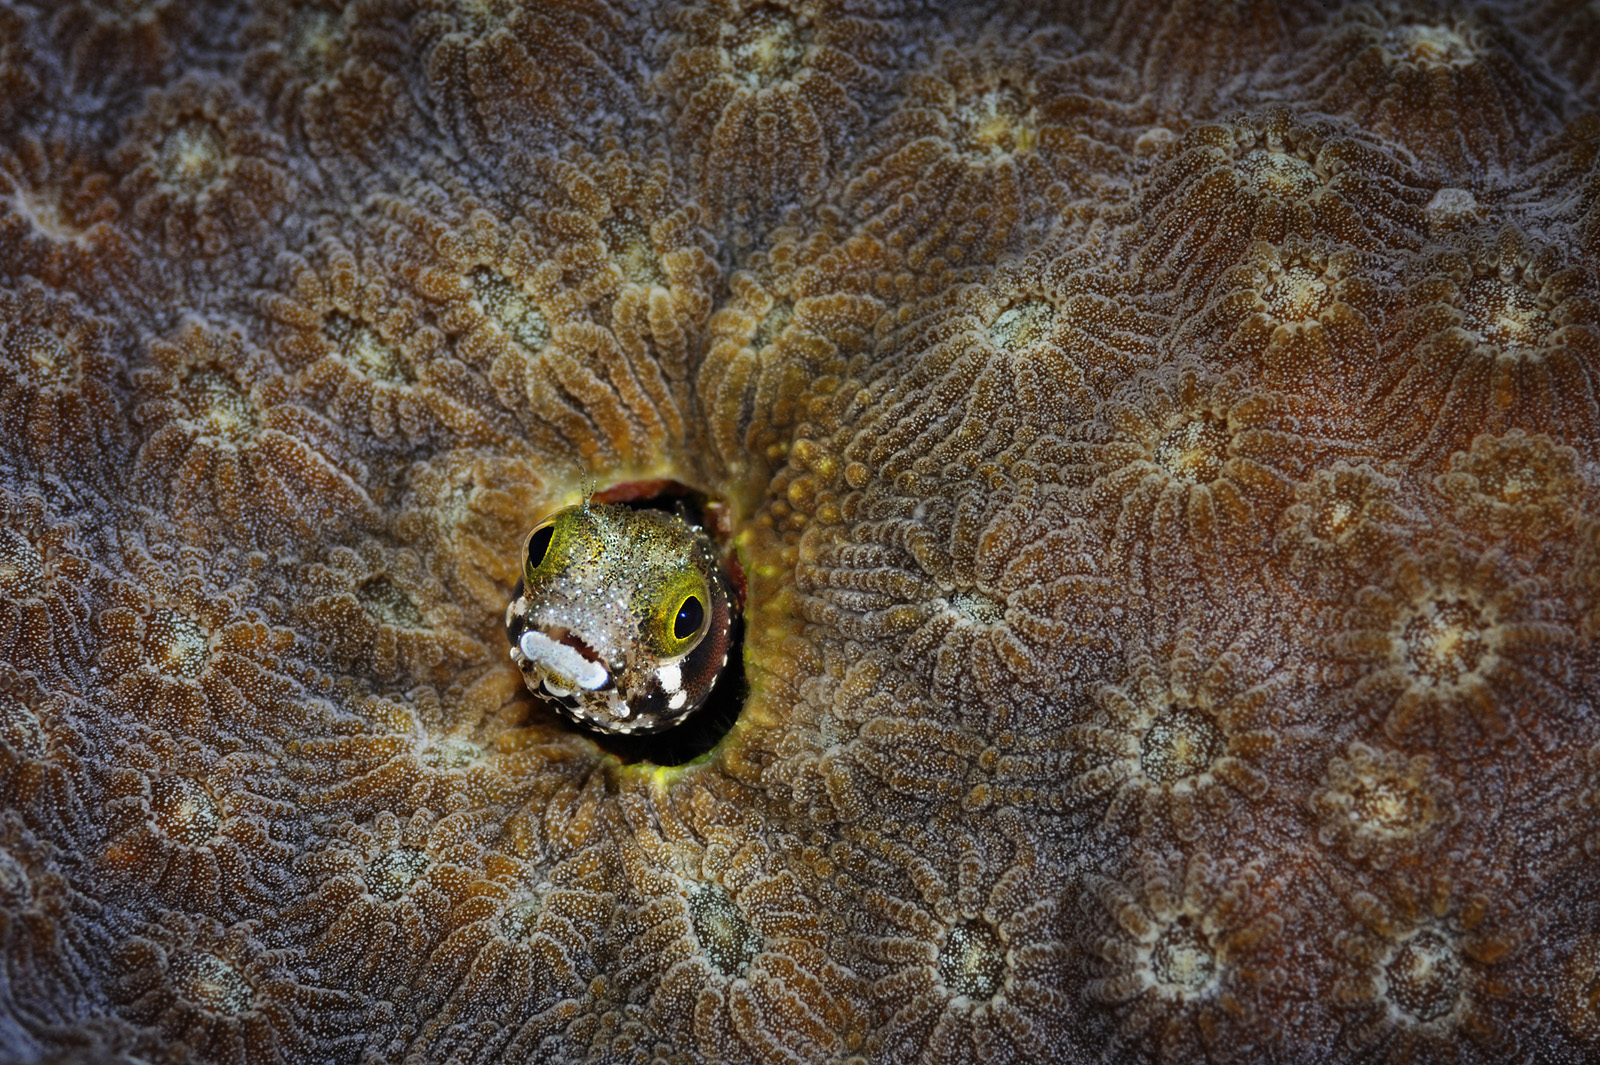 Coral Fortress - Spinyhead Blenny in Coral, Belize, 2010